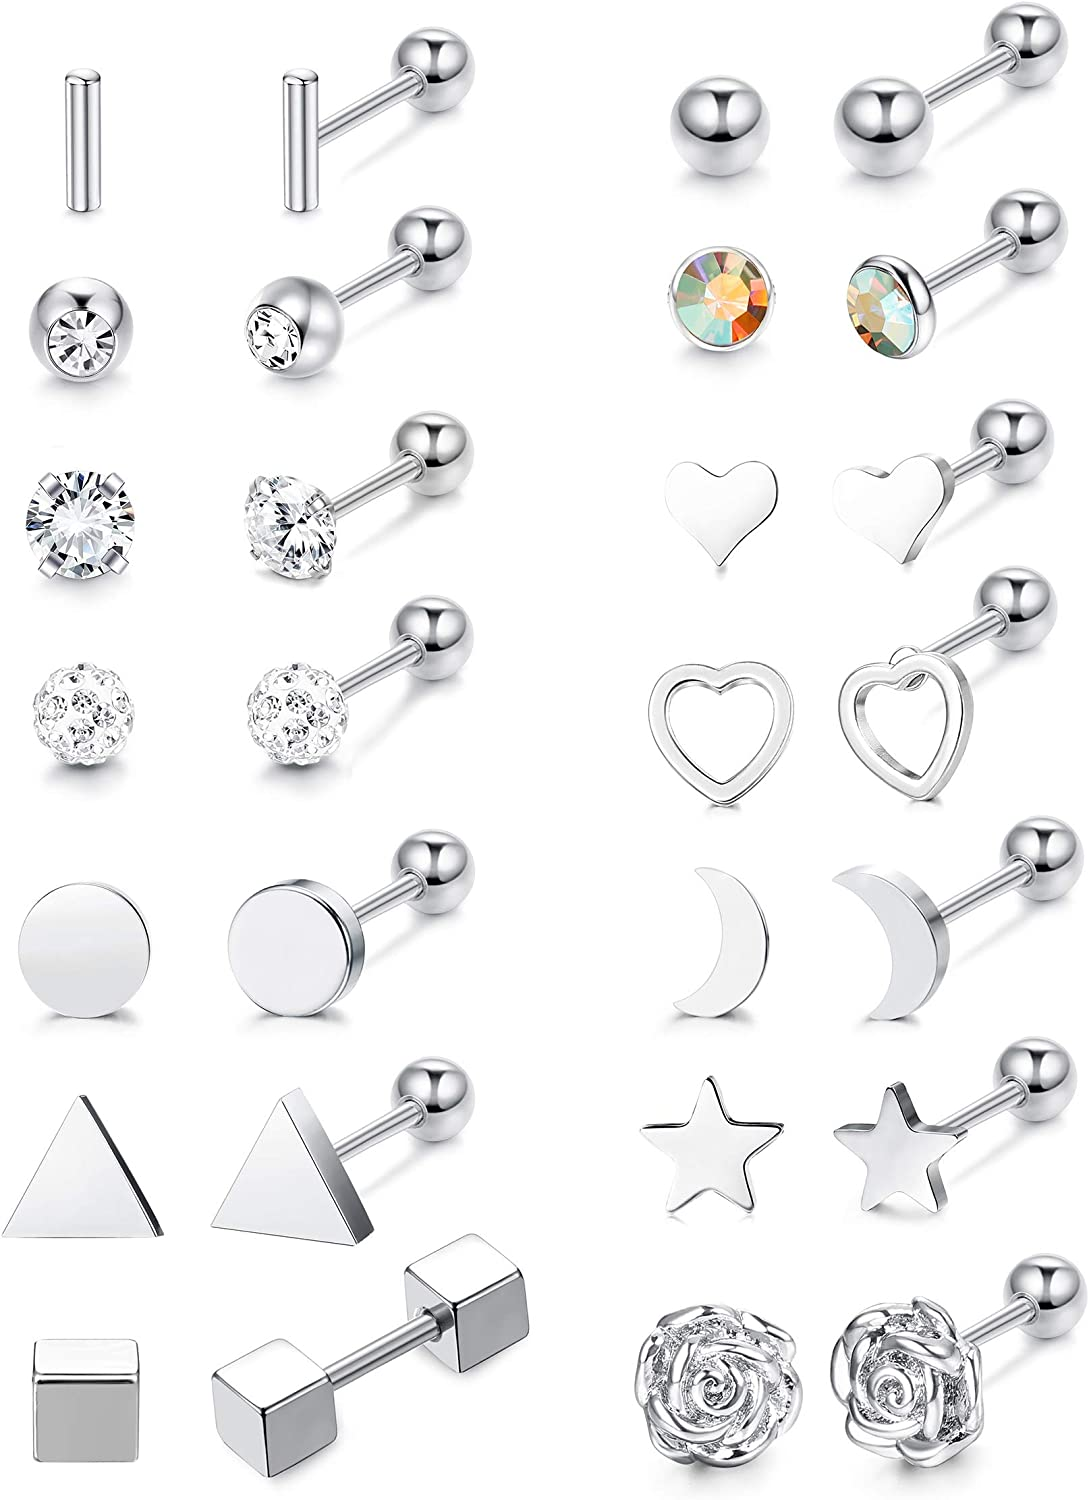 Subiceto 14 Pairs Stainless Steel Barbell Stud Earrings for Men Women Cartilage Helix Earring Moon Star Rose Tragus Conch Ear Piercing Jewelry